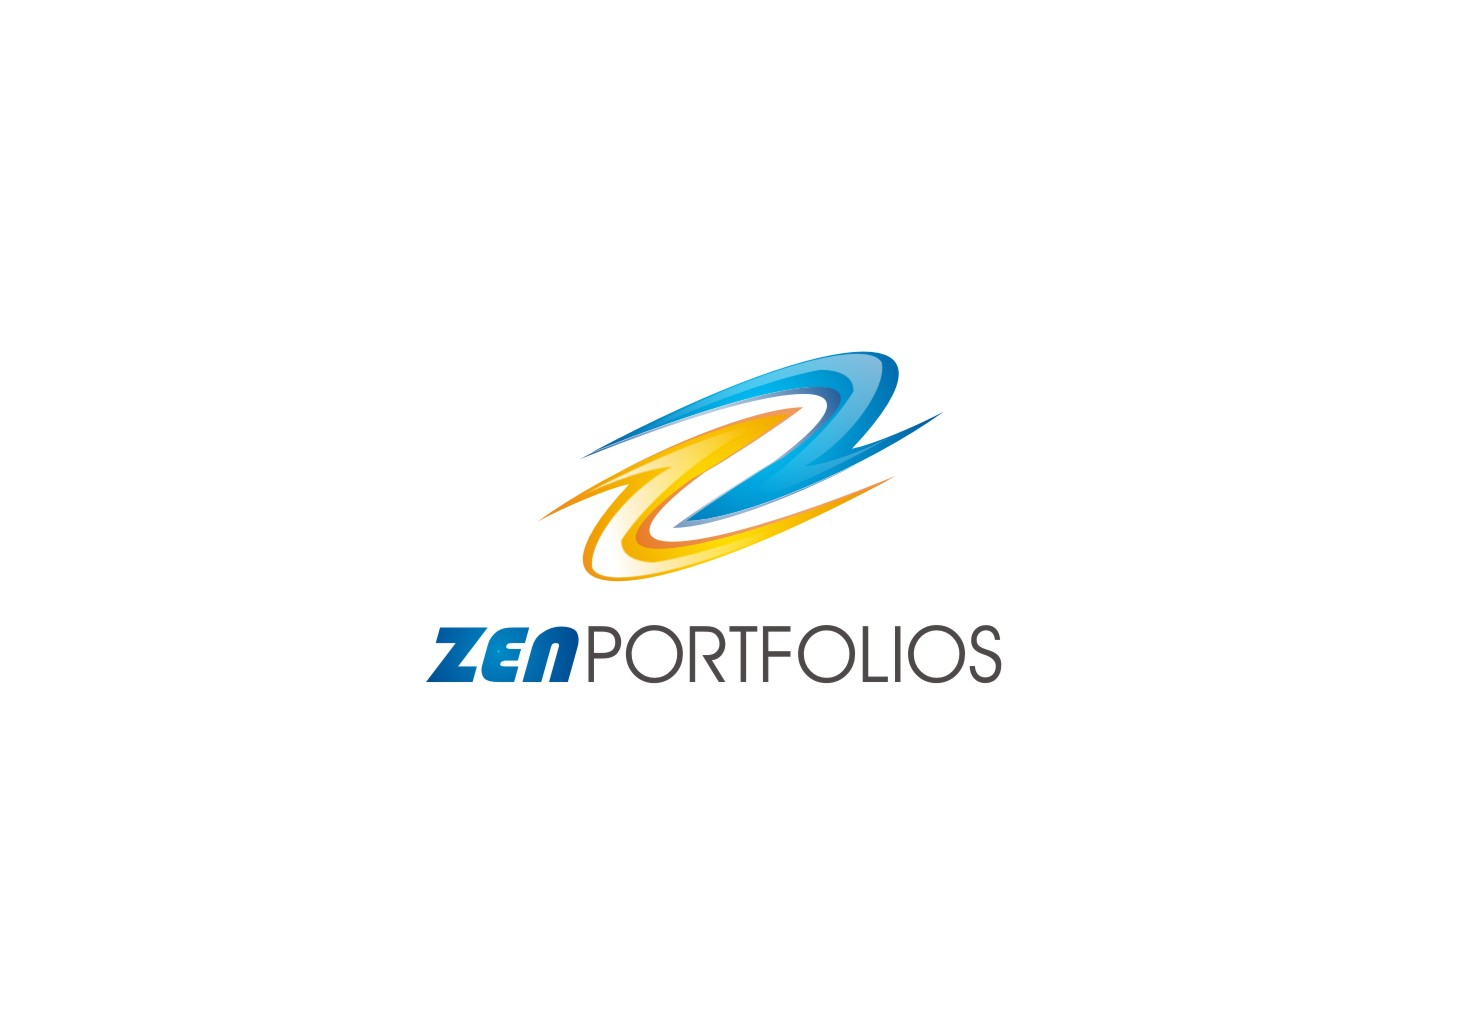 Logo Design by yanxsant - Entry No. 37 in the Logo Design Contest New Logo Design for ZEN Portfolios.